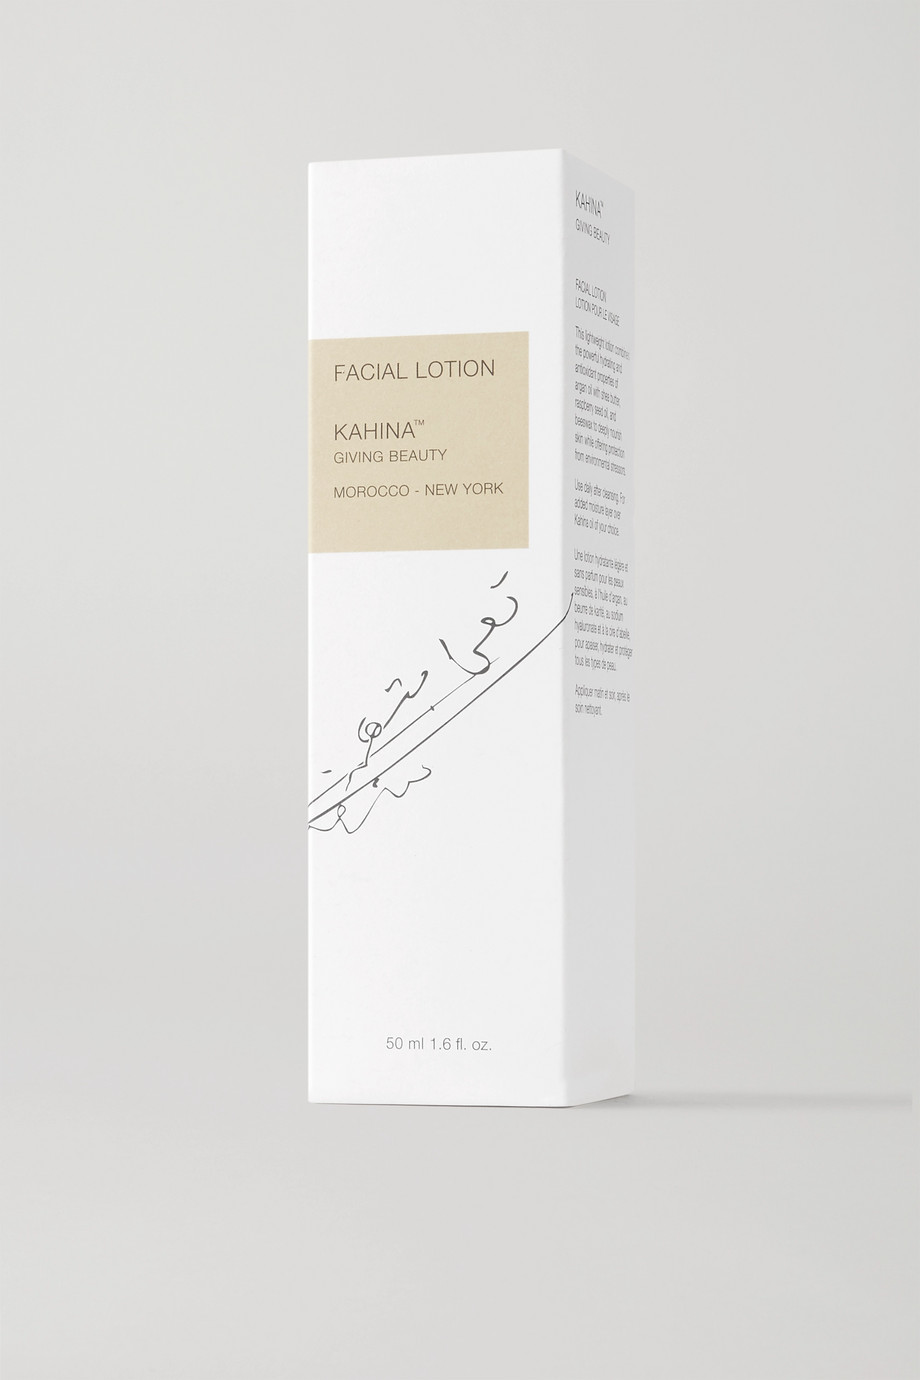 Kahina Giving Beauty + NET SUSTAIN Facial Lotion, 50ml